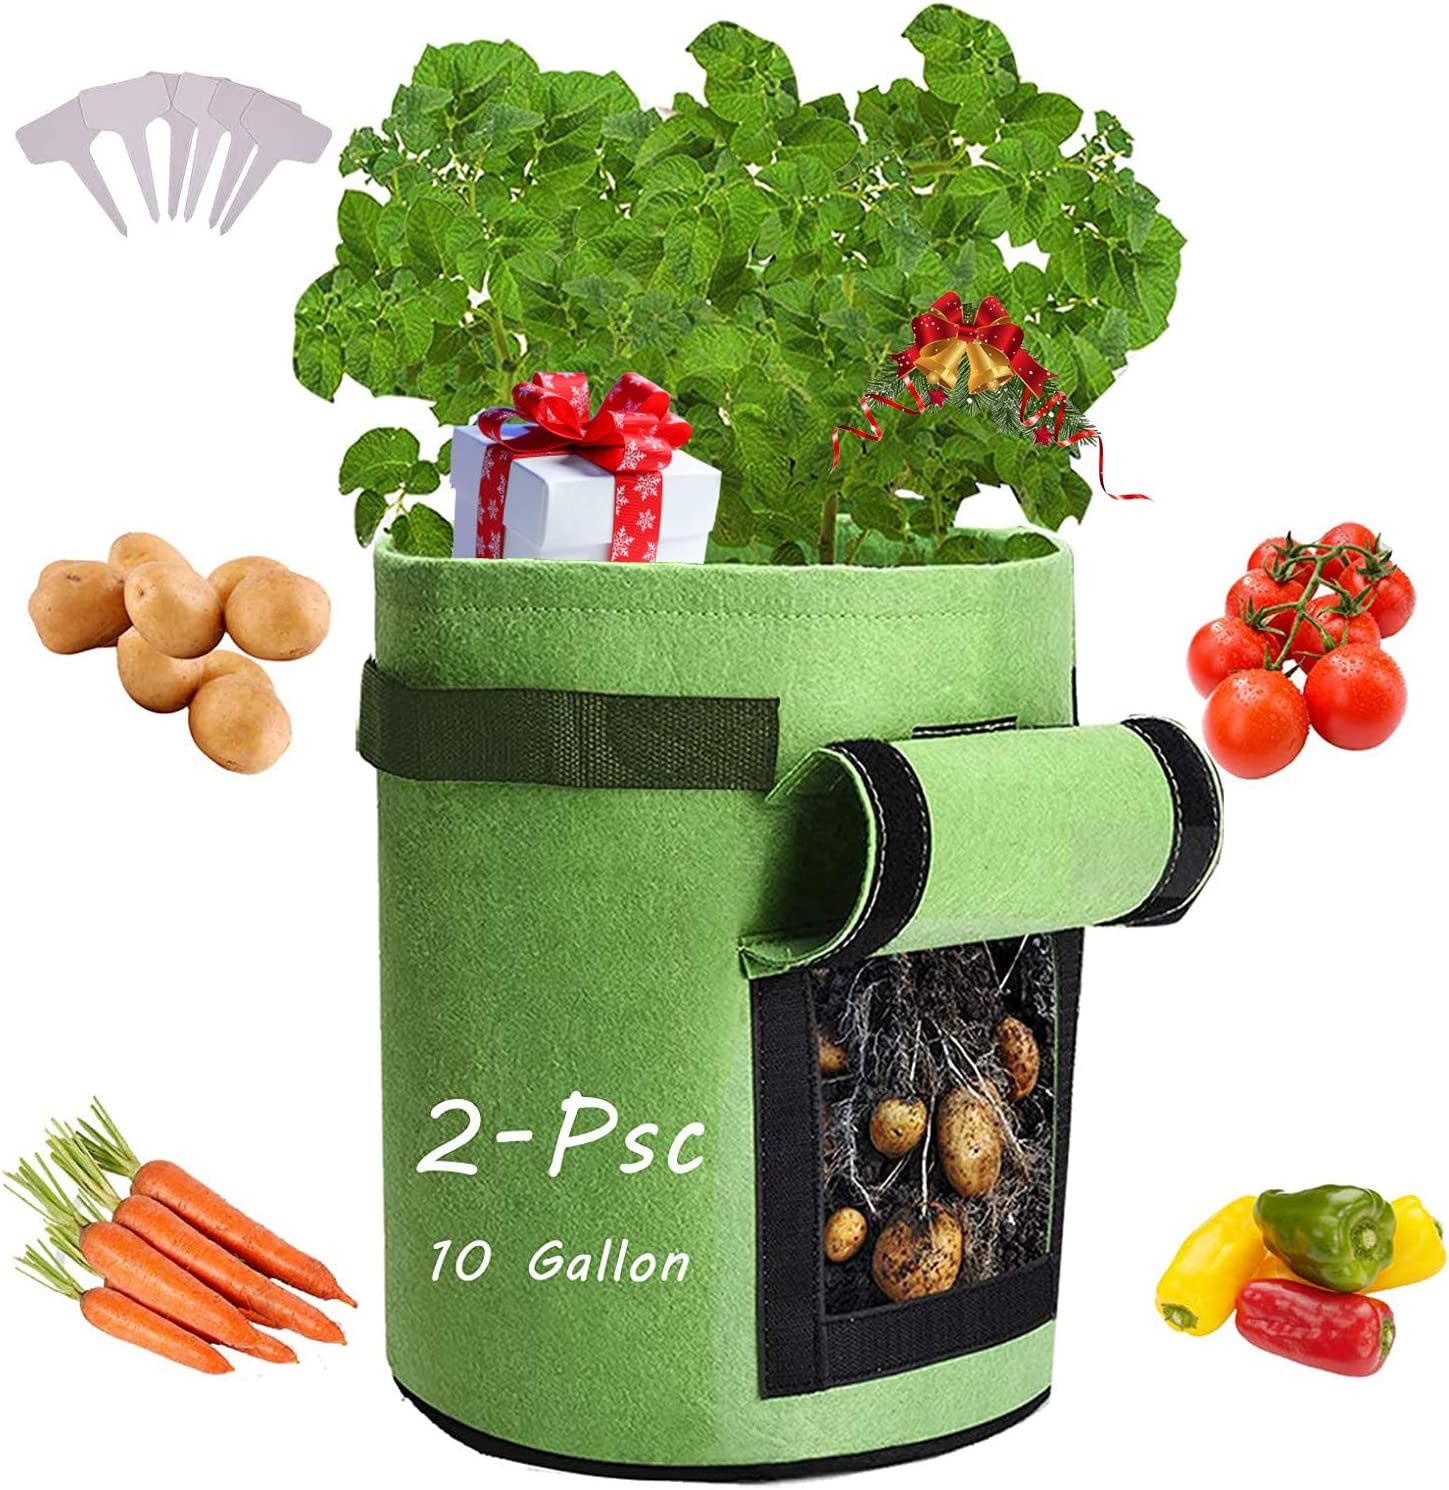 Qaxlry Potato-Grow-Bags, Potatoes Growing Containers with Handles&Access Flap for Garden,Vegetables,Tomato,Carrot, Onion,Fruits,Plants Planting Bag Planter (2-Pack)